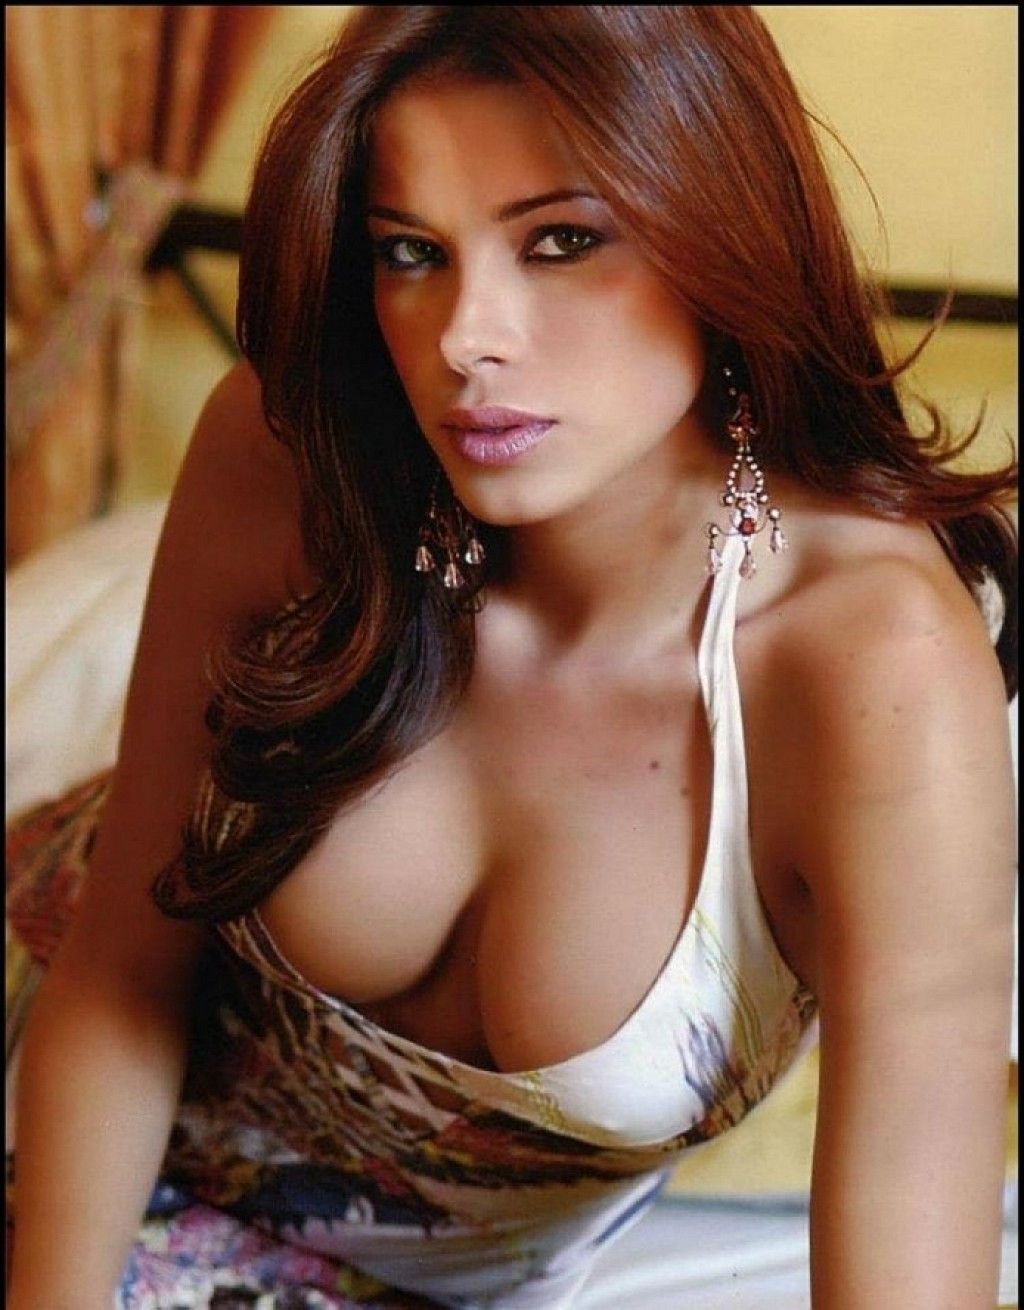 Find your hot Venezuelan women